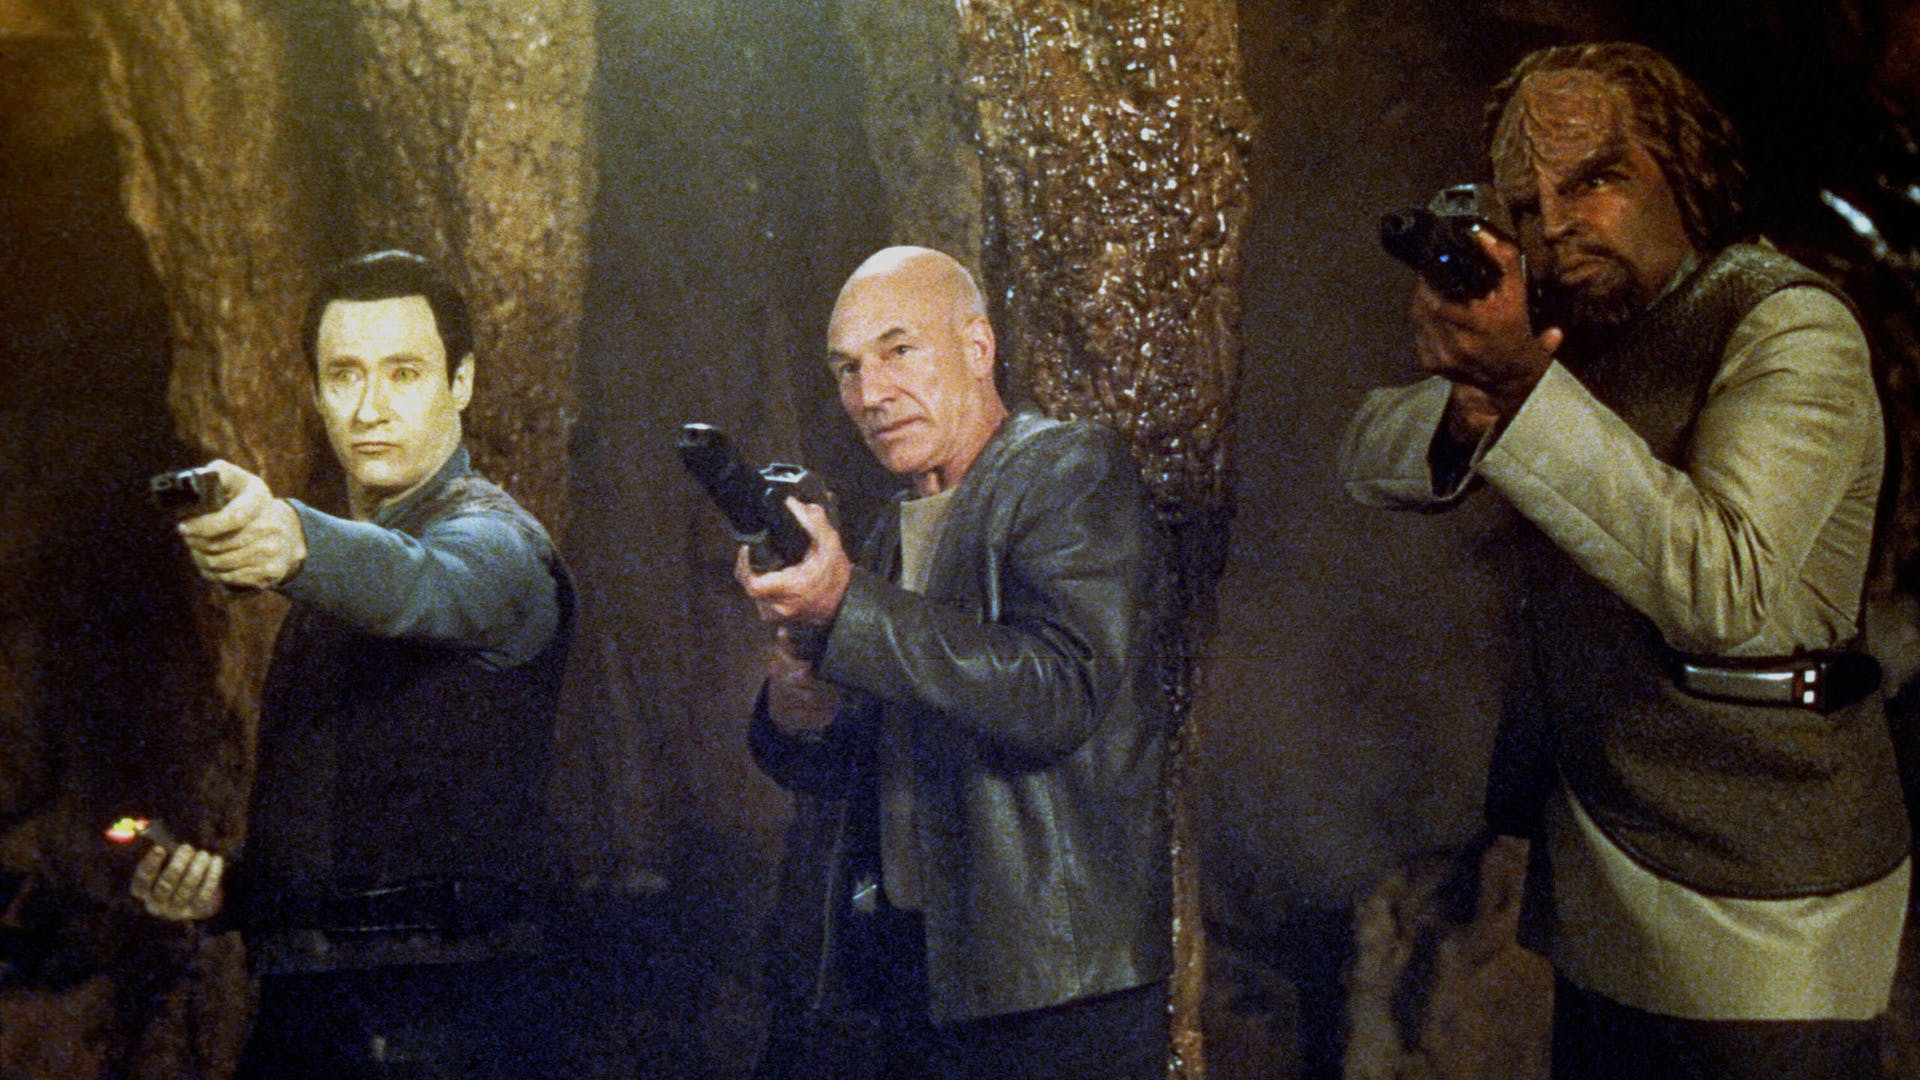 Data (Brent Spiner), Captain Picard (Patrick Stewart) and Worf (Michael Dorn) in Star Trek: Insurrection (1998)